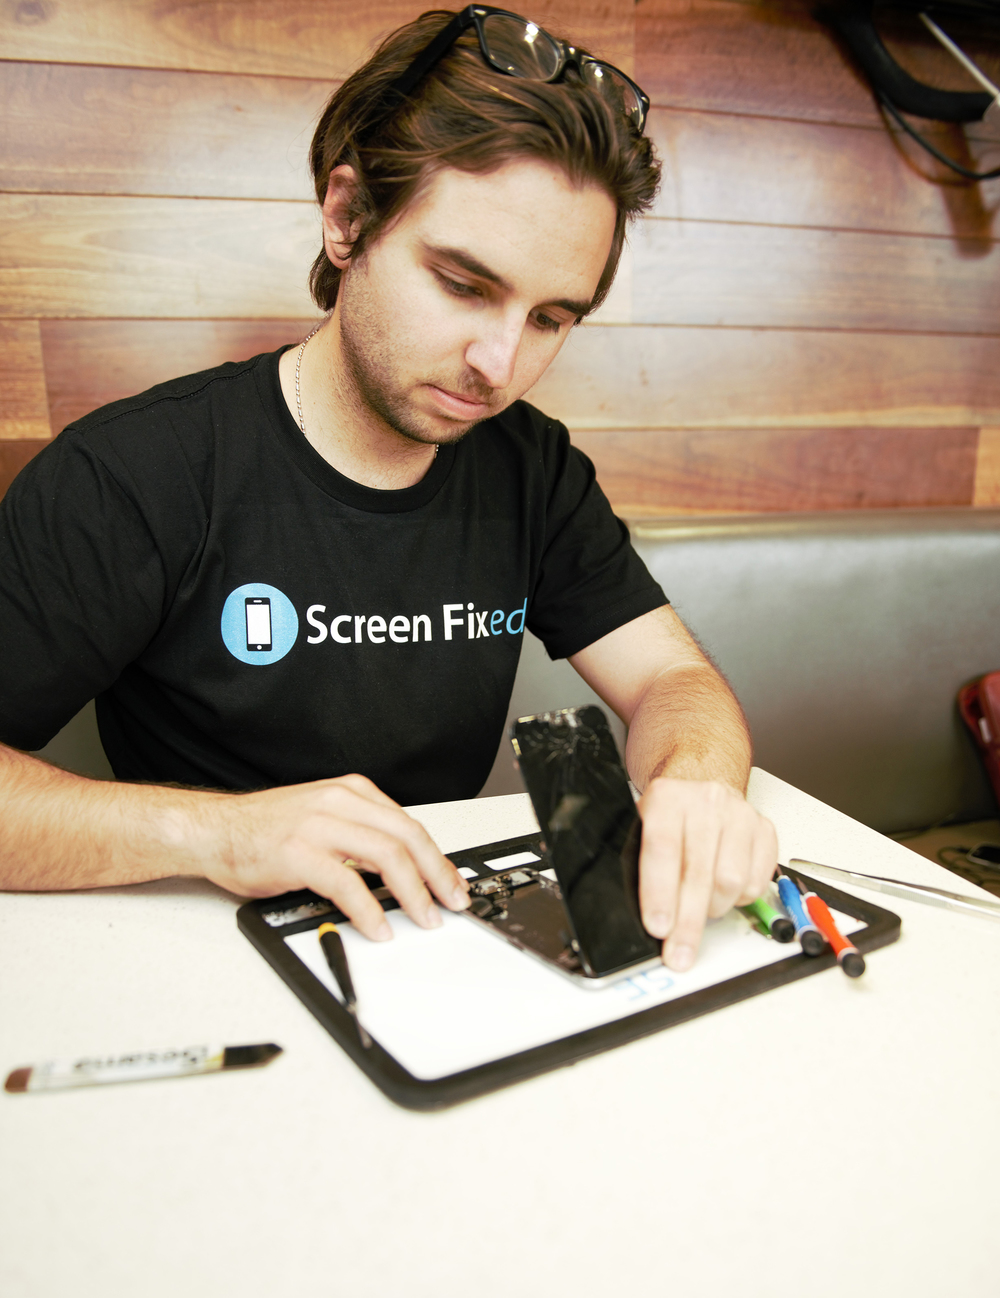 Screen Fixed offers on-demand phone repairs at the time and place of the customer's choosing